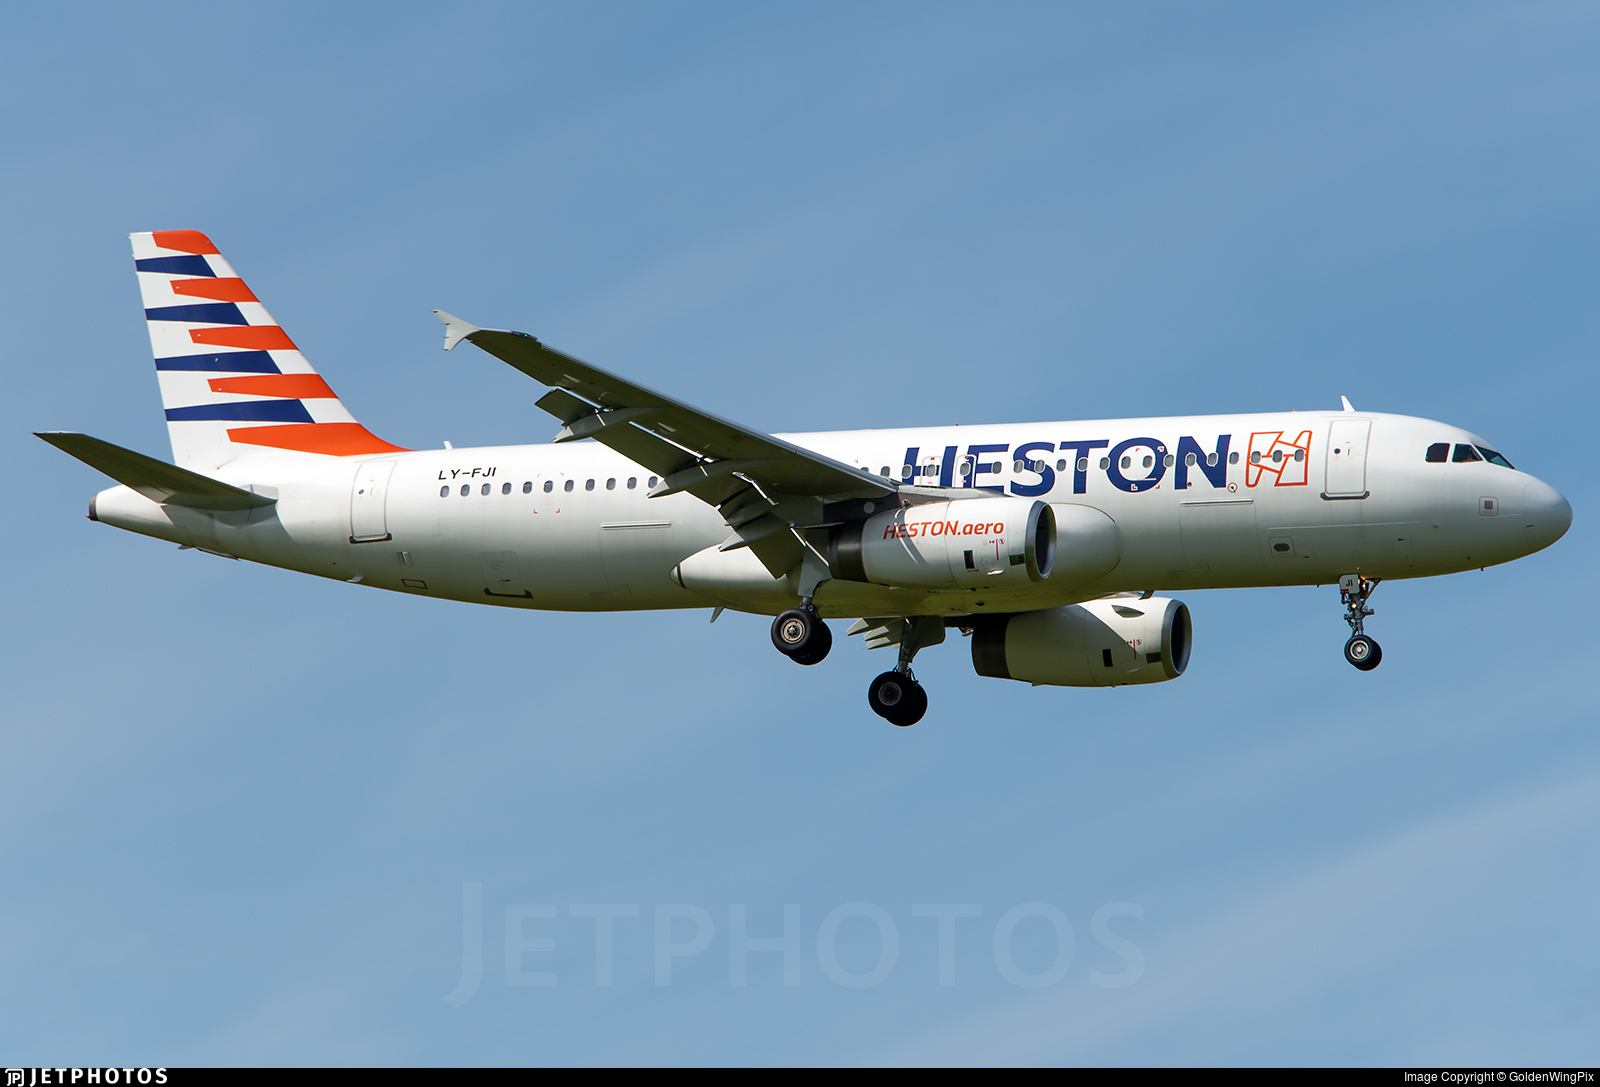 LY-FJI - Airbus A320-232 - Heston Airlines